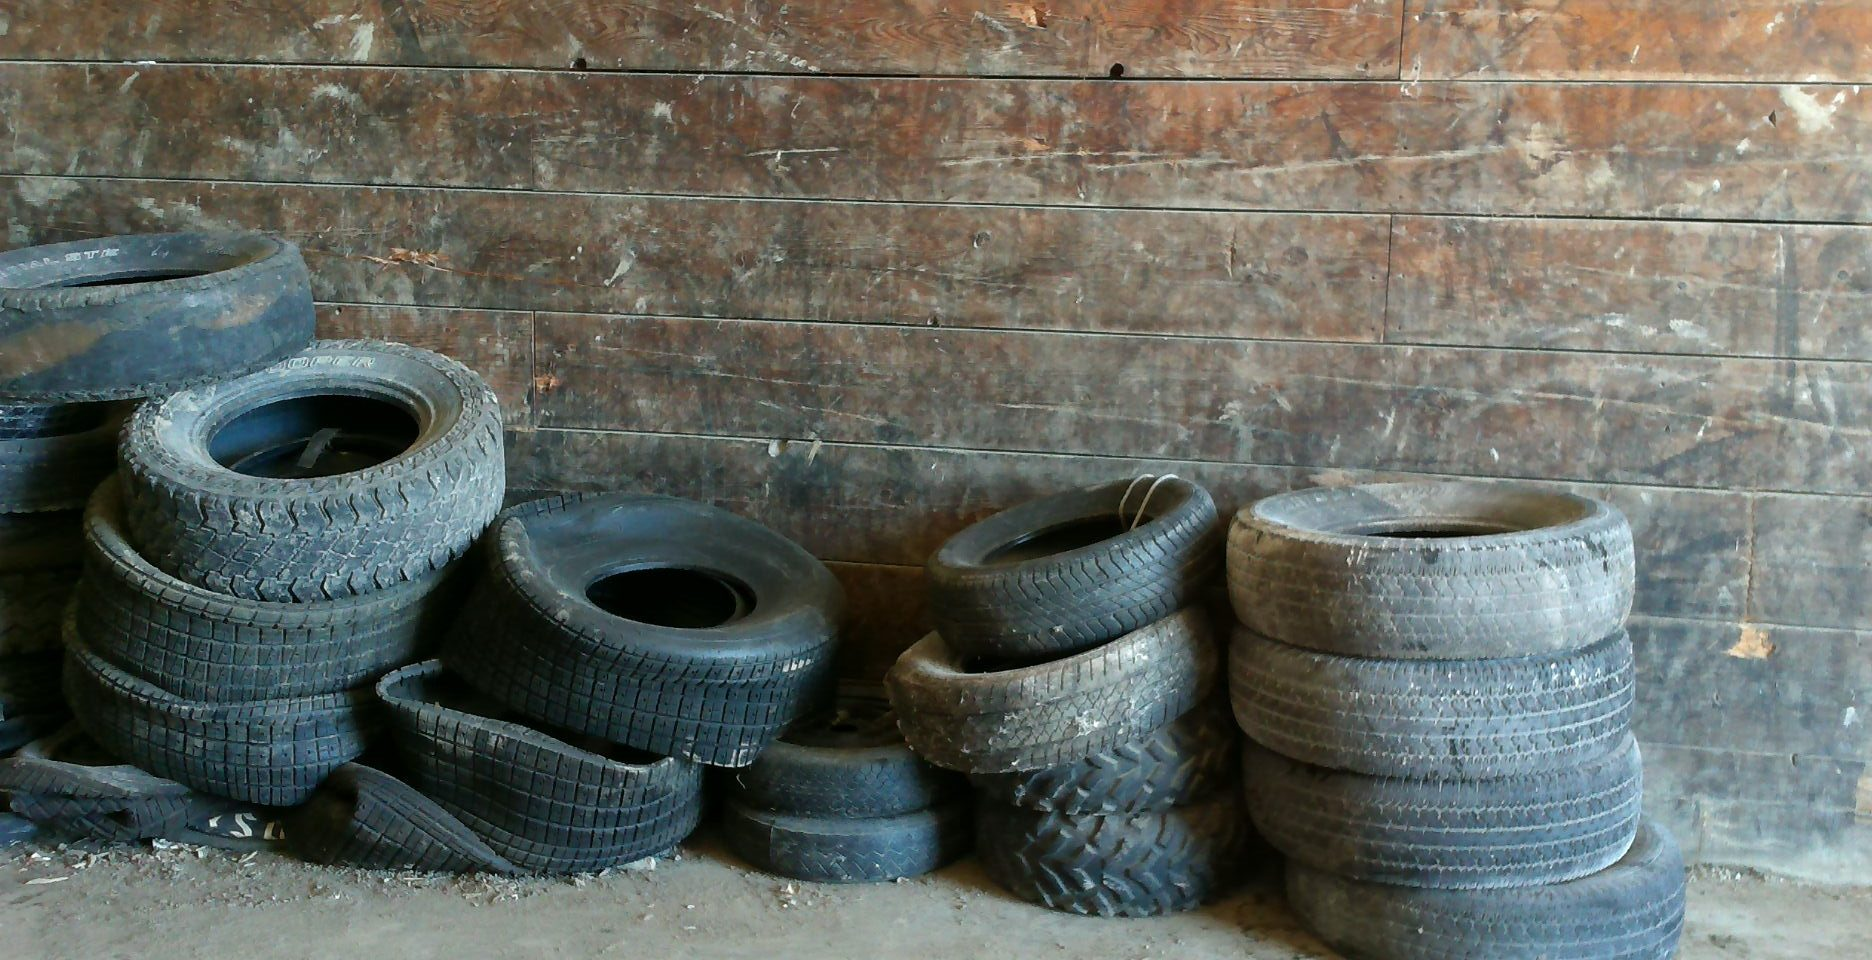 Waste tires at SCISWA